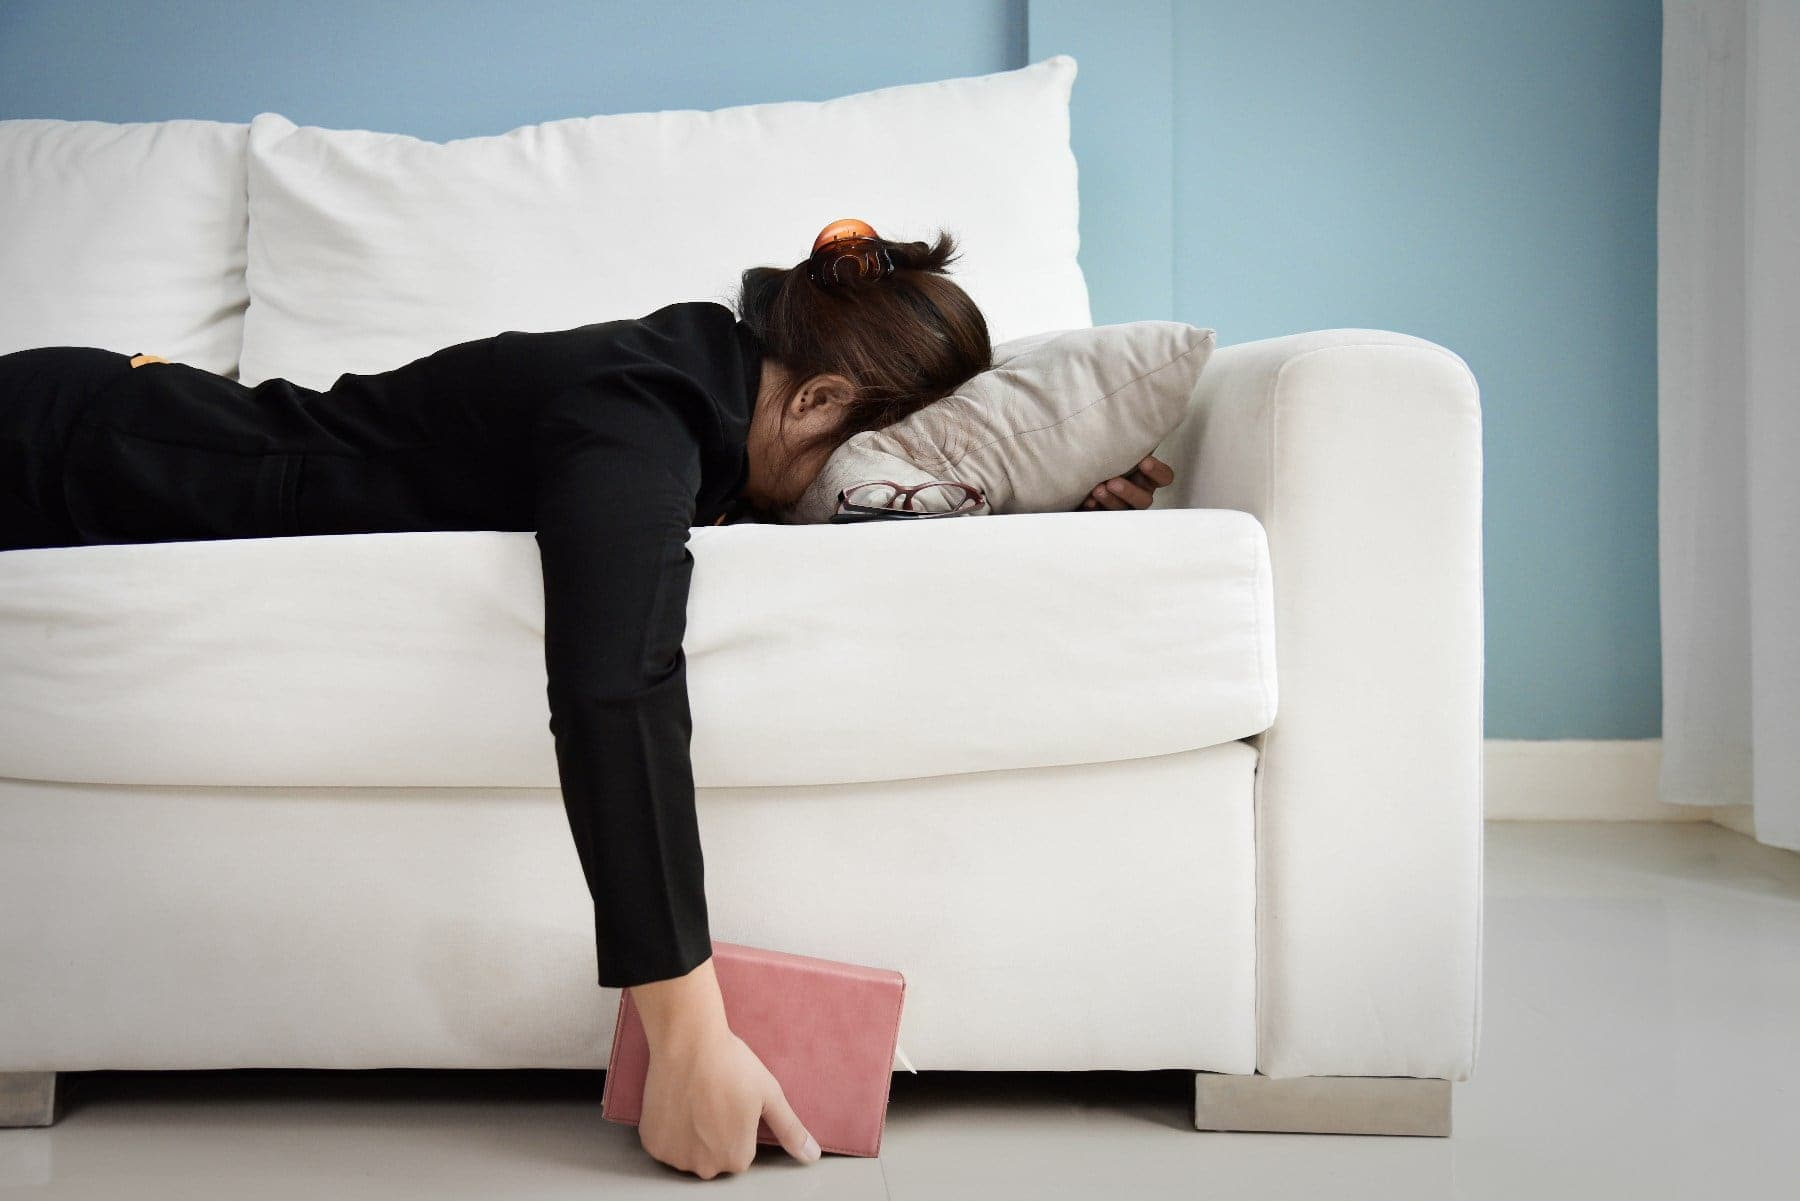 Woman exhausted and in burnout